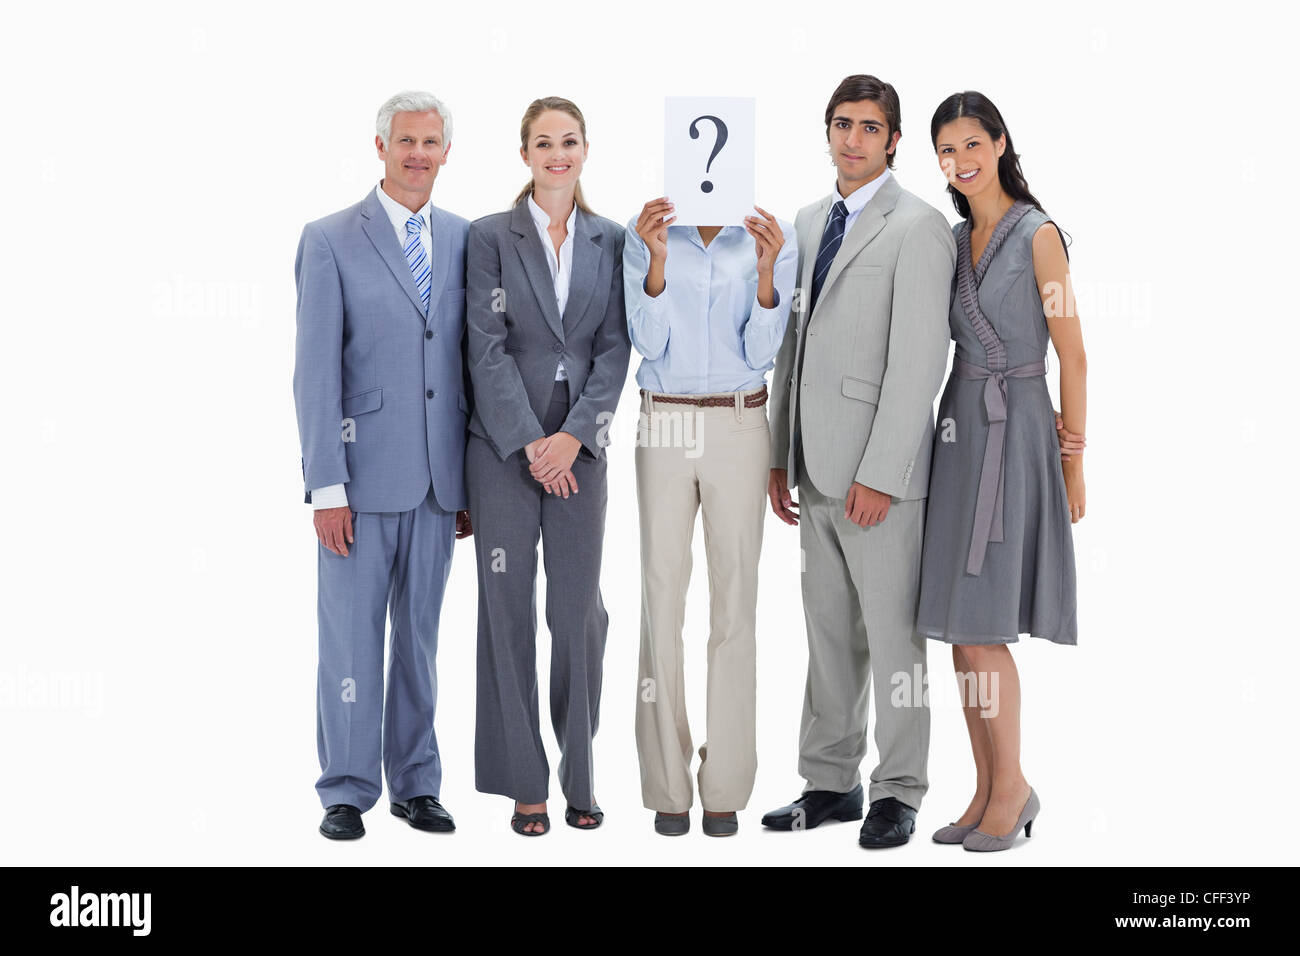 Business team with a question mark - Stock Image